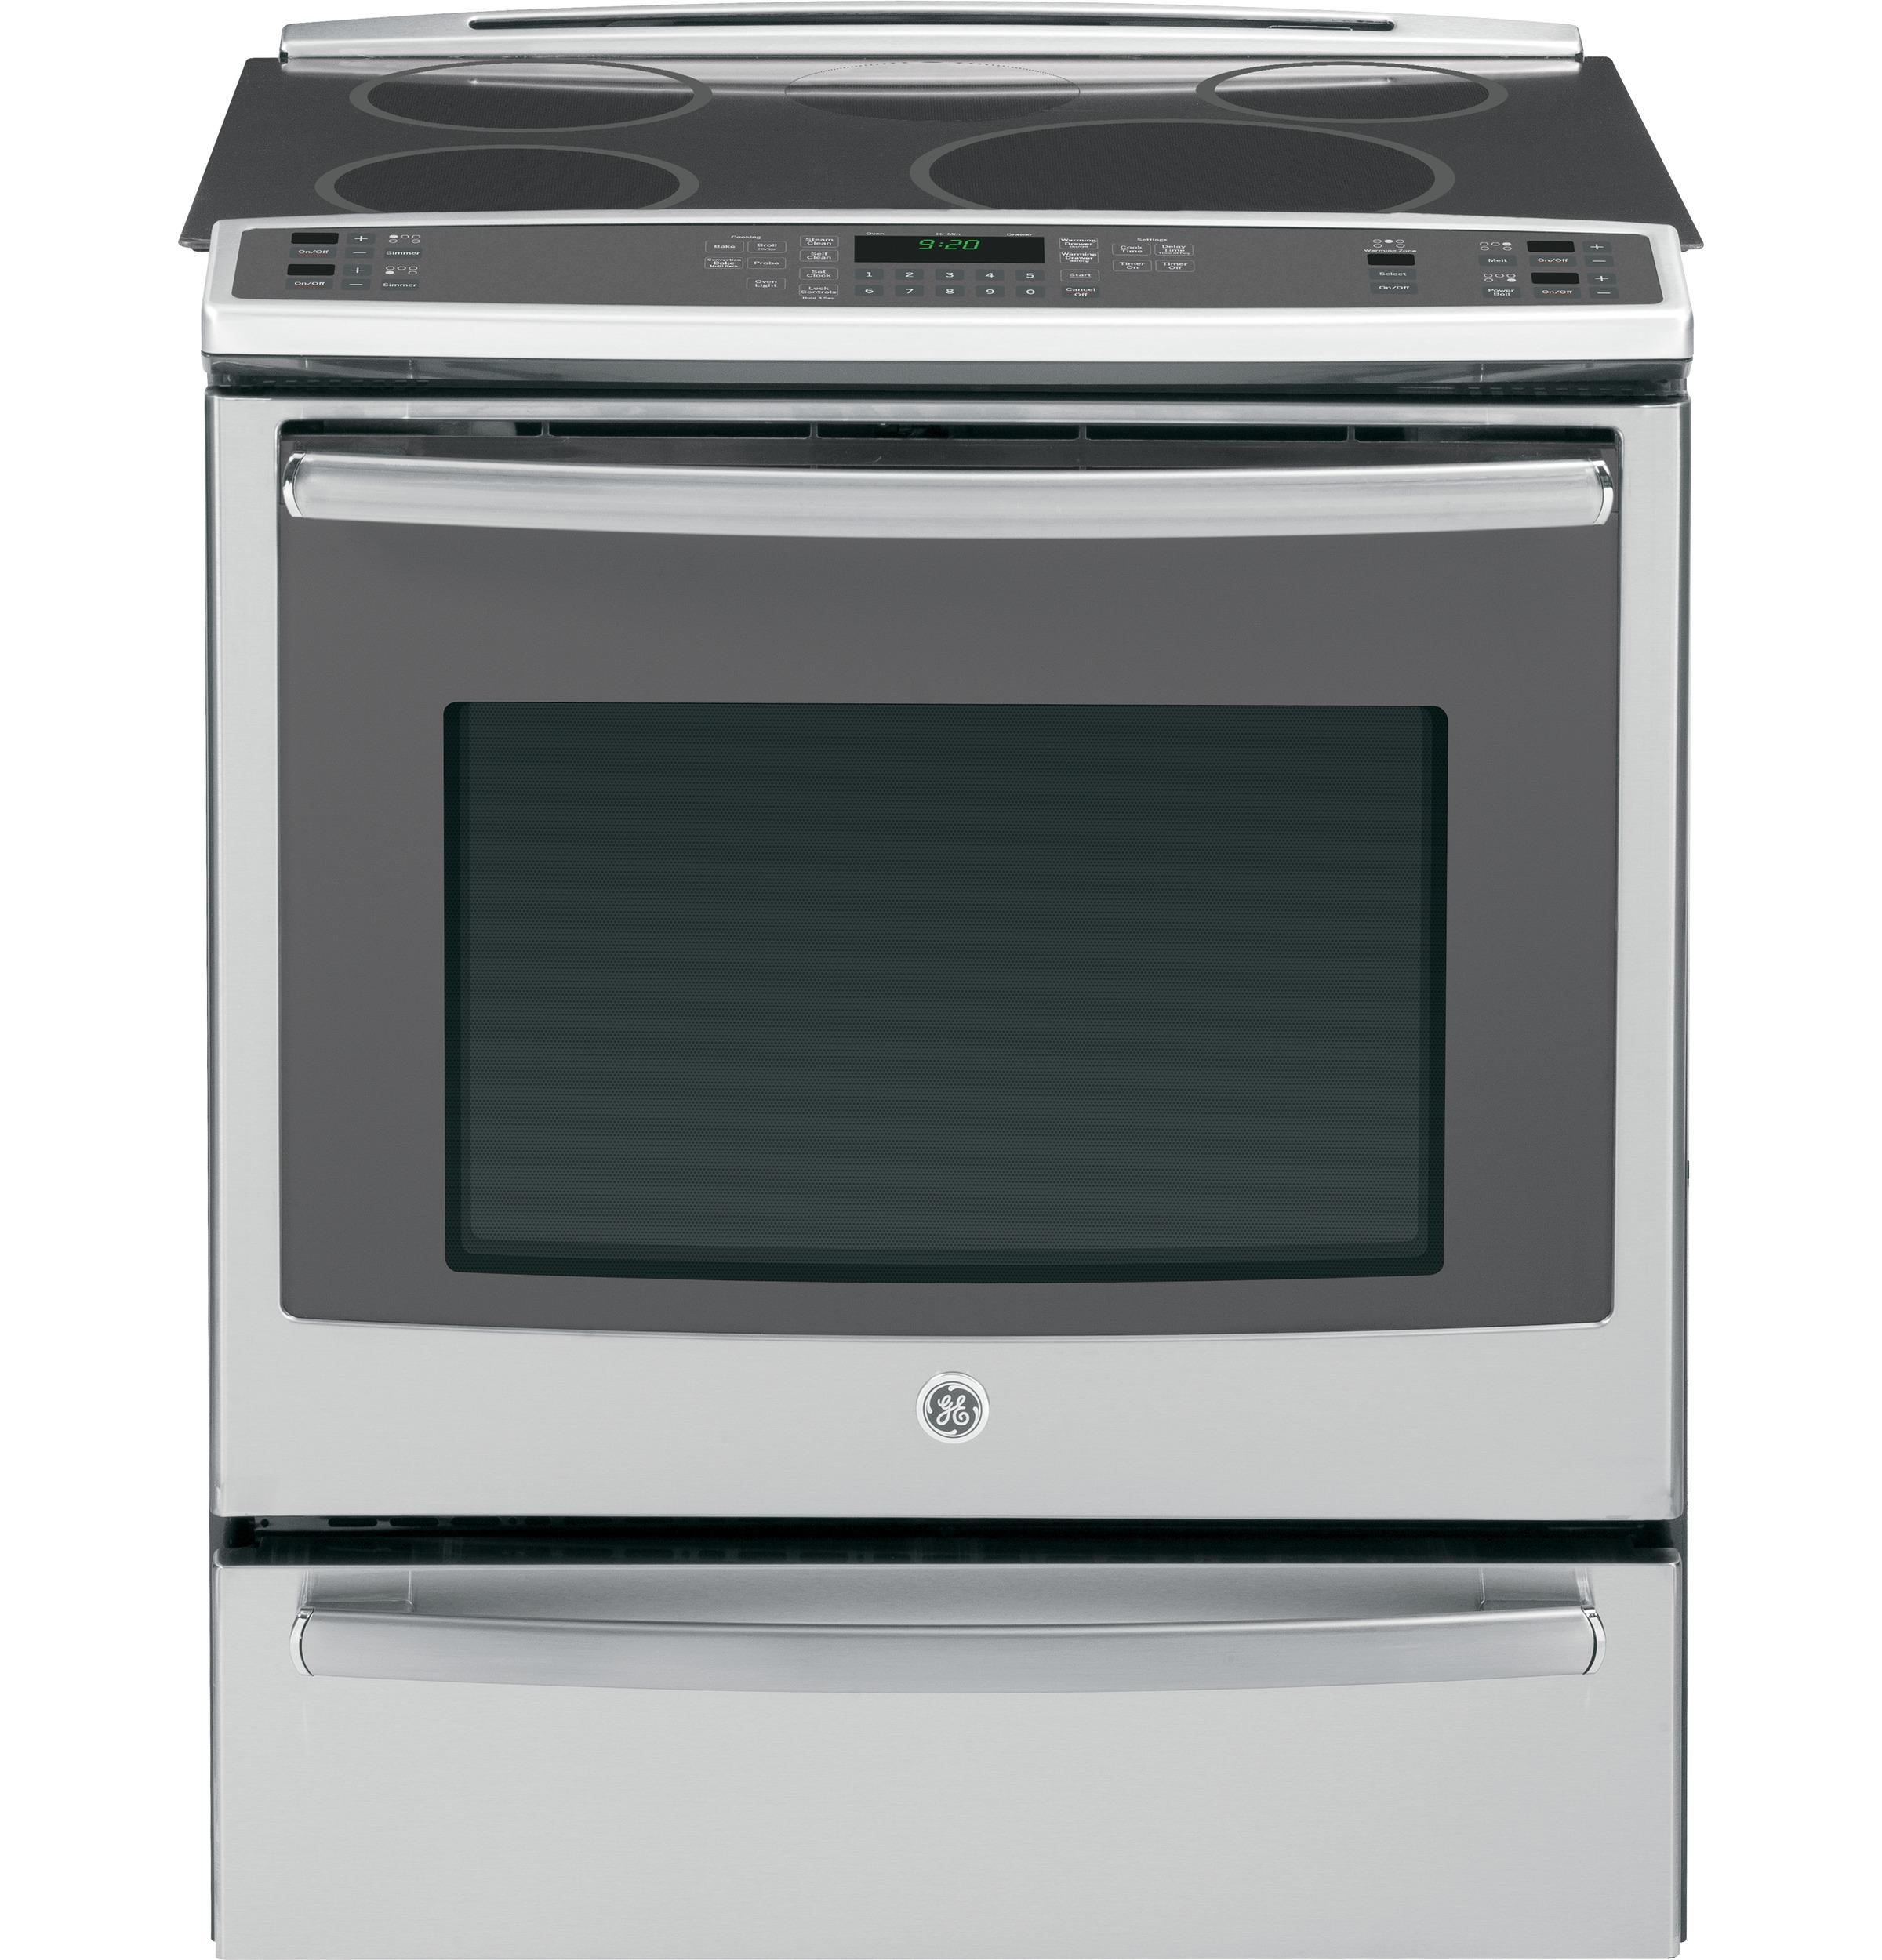 "GE Appliances Electric Range 30"" Slide-In Induction and Convection Range - Item Number: PHS920SFSS"